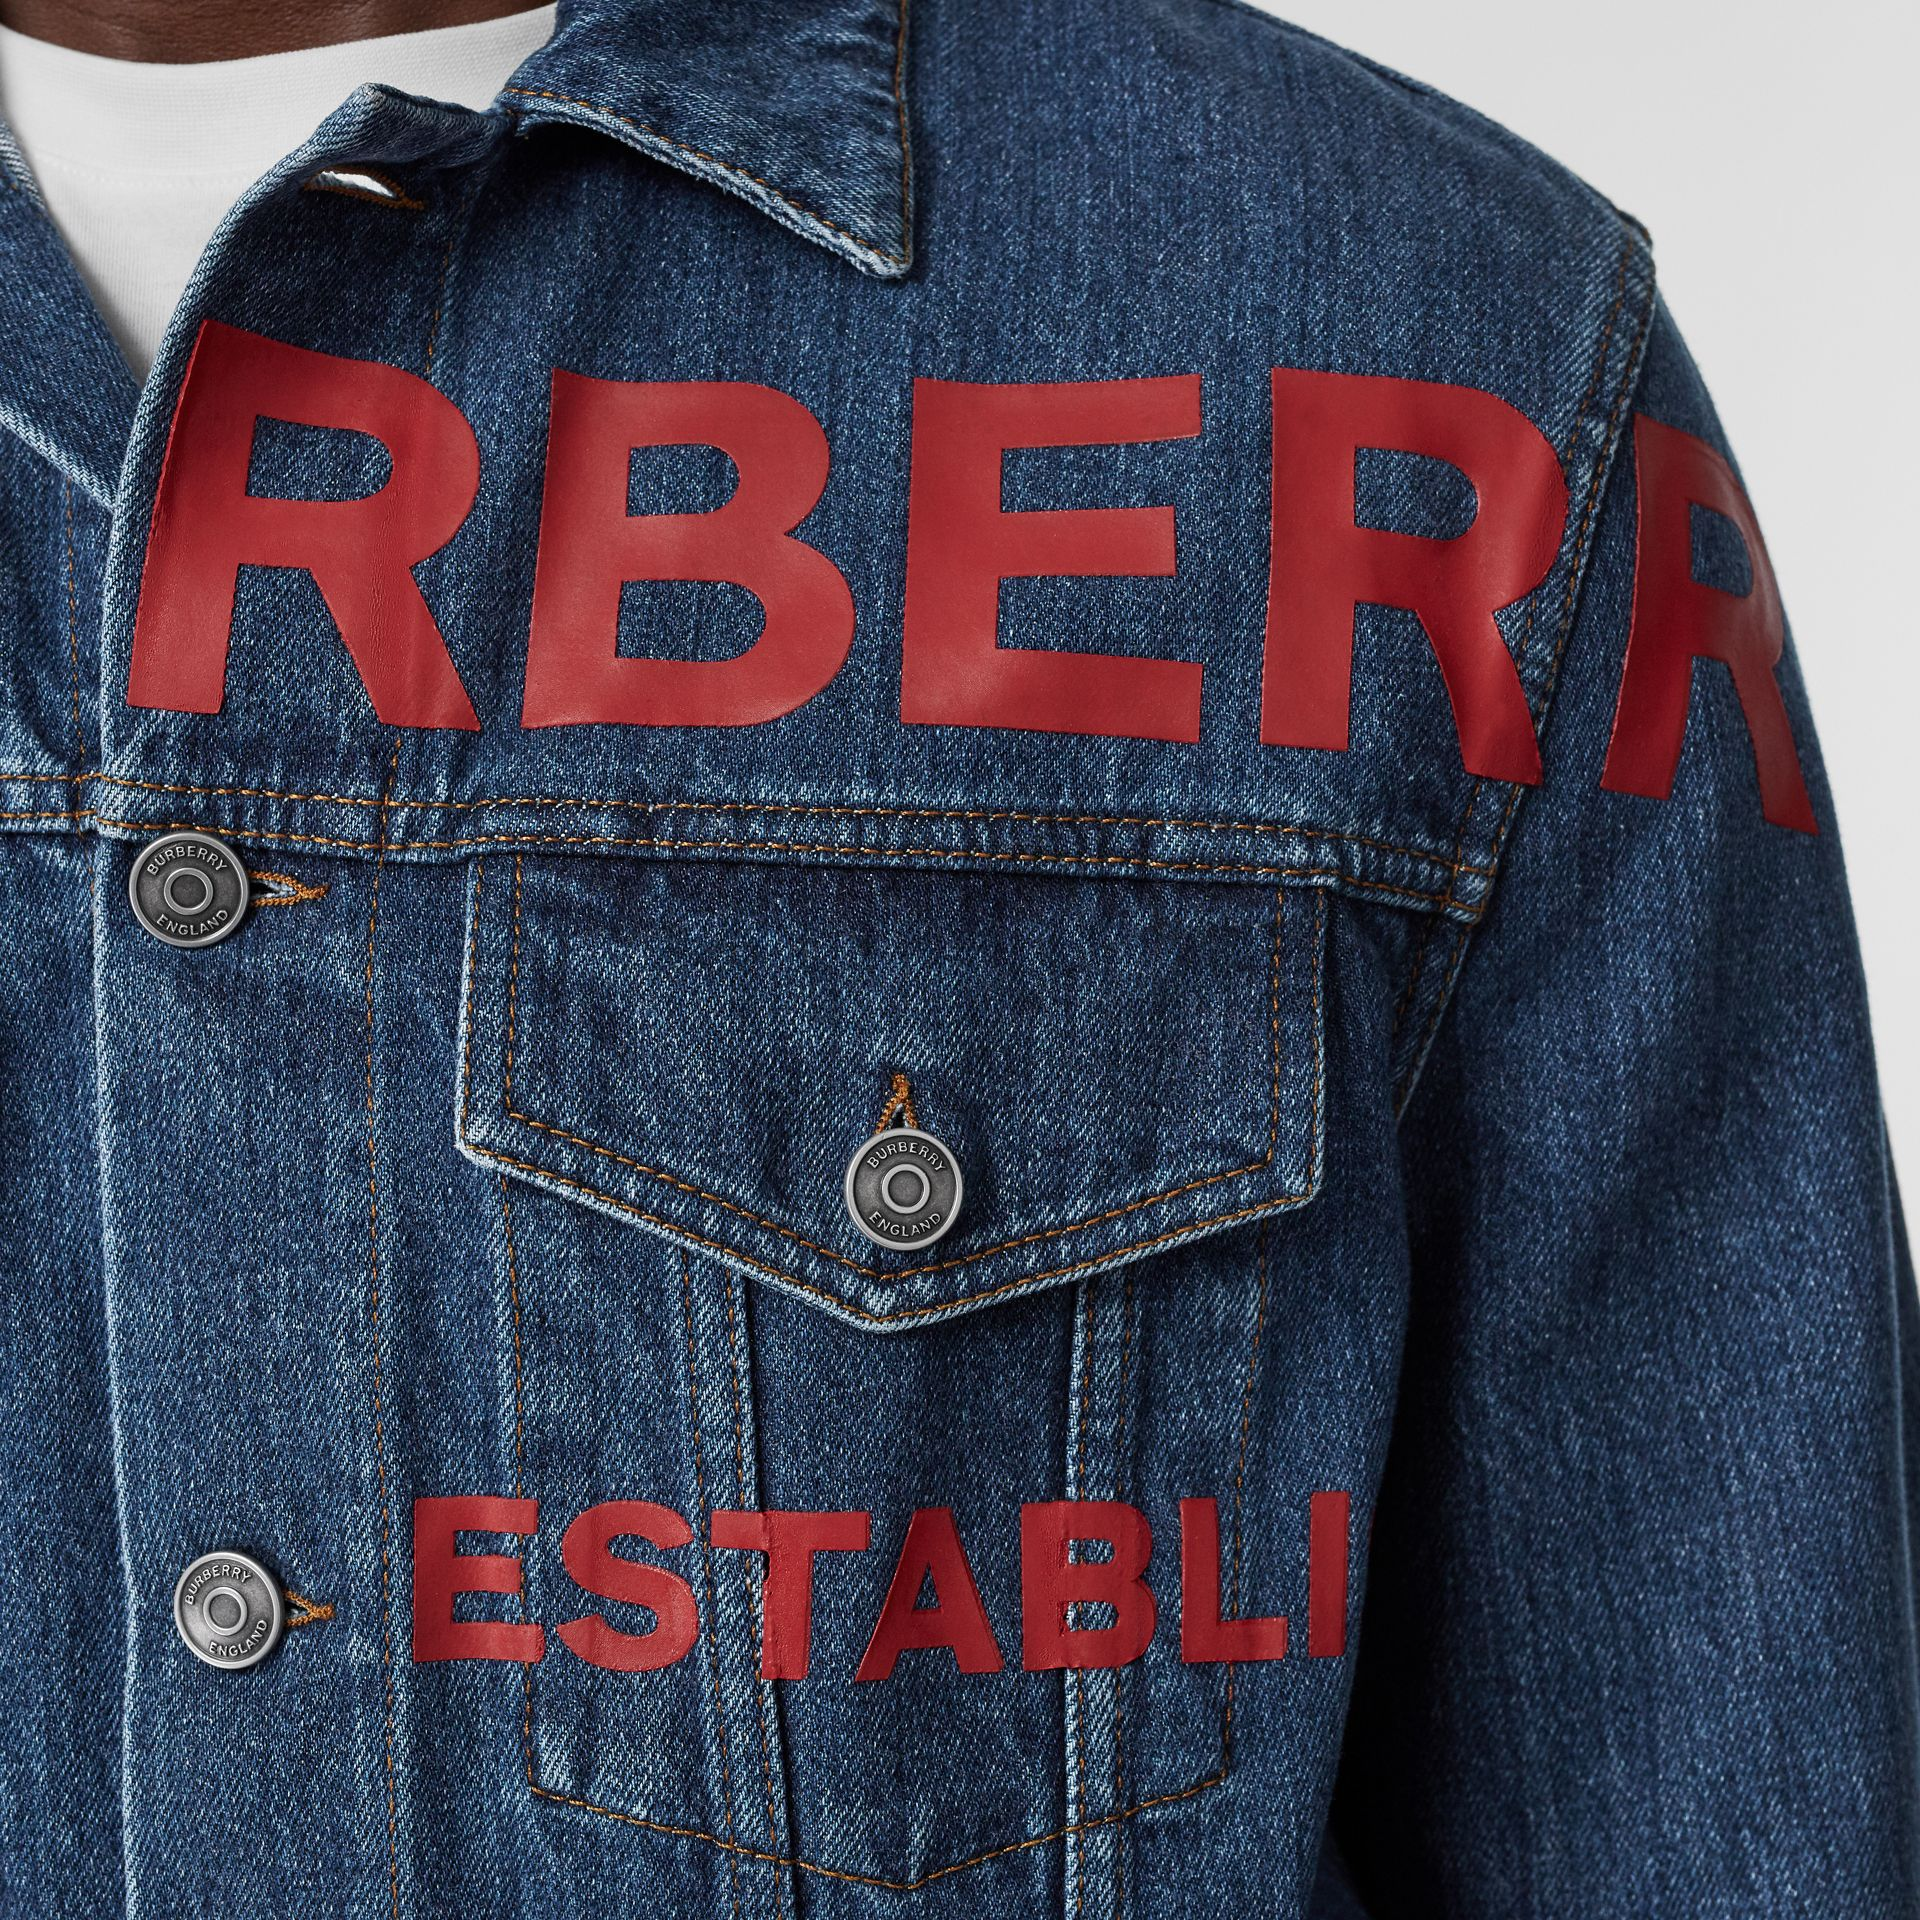 Horseferry Print Japanese Denim Jacket in Mid Indigo Blue - Men | Burberry Australia - gallery image 1